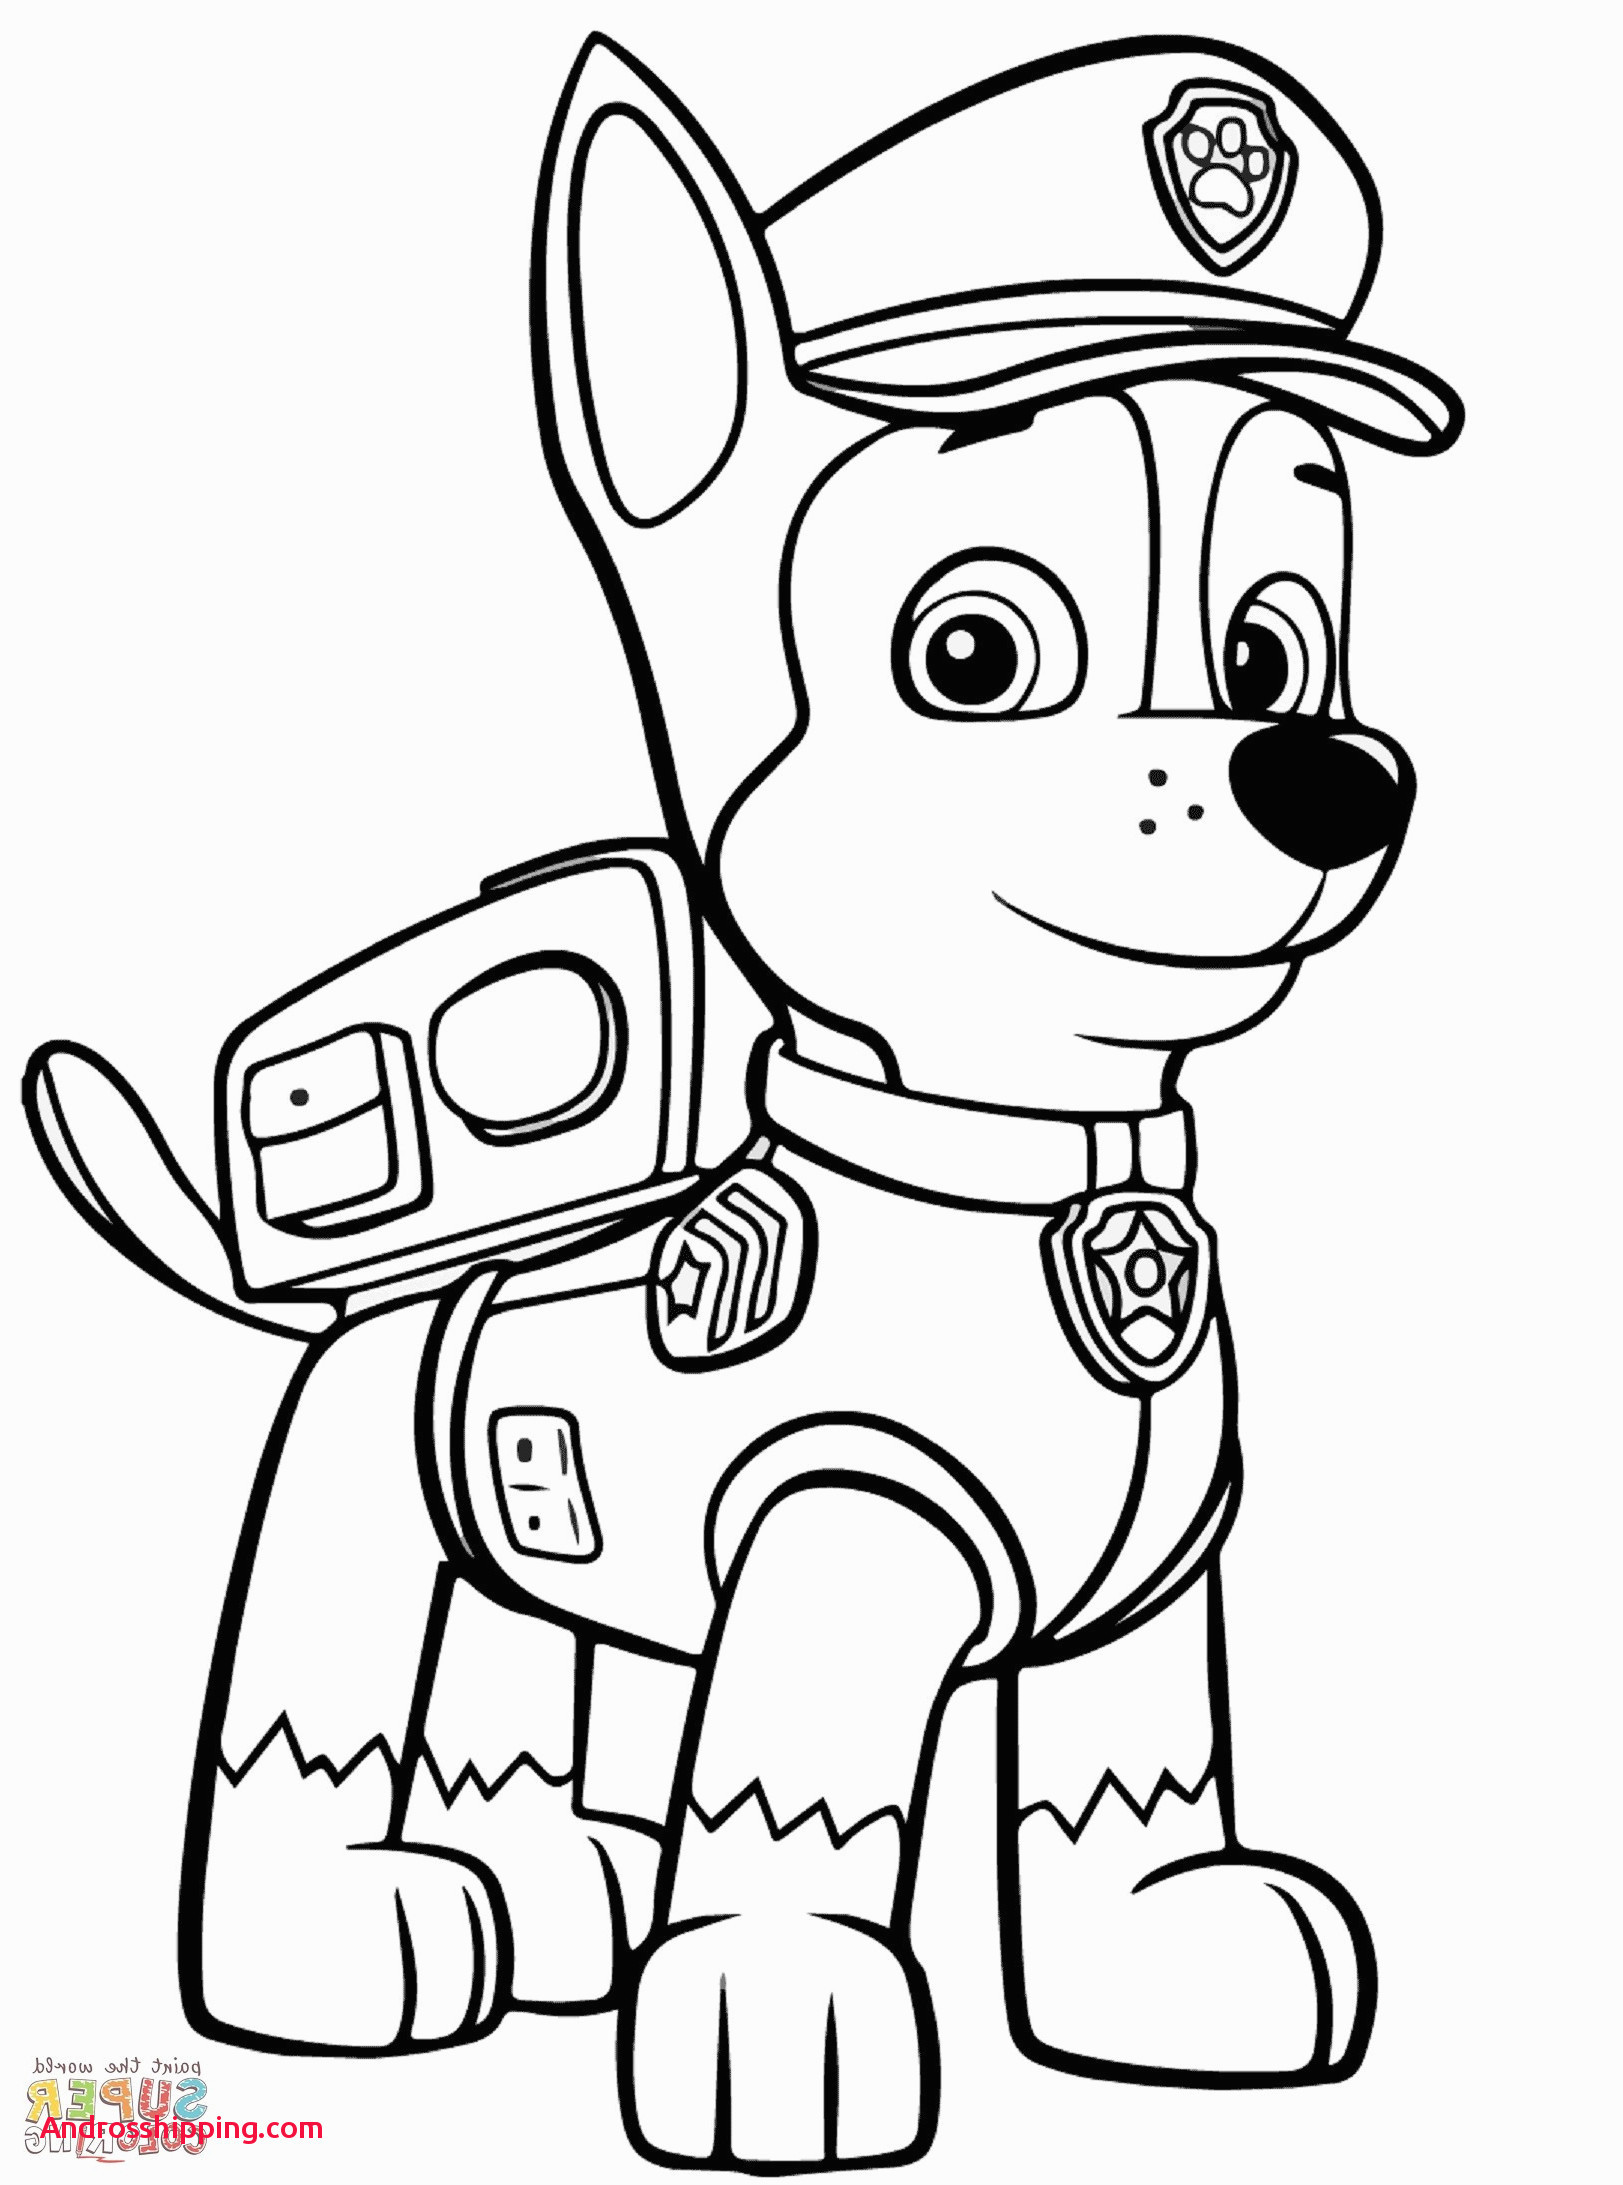 Paw Patrol Ausmalbild Das Beste Von 10 Awesome Coloring Pages Zuma From Paw Patrol androsshipping Genial Galerie